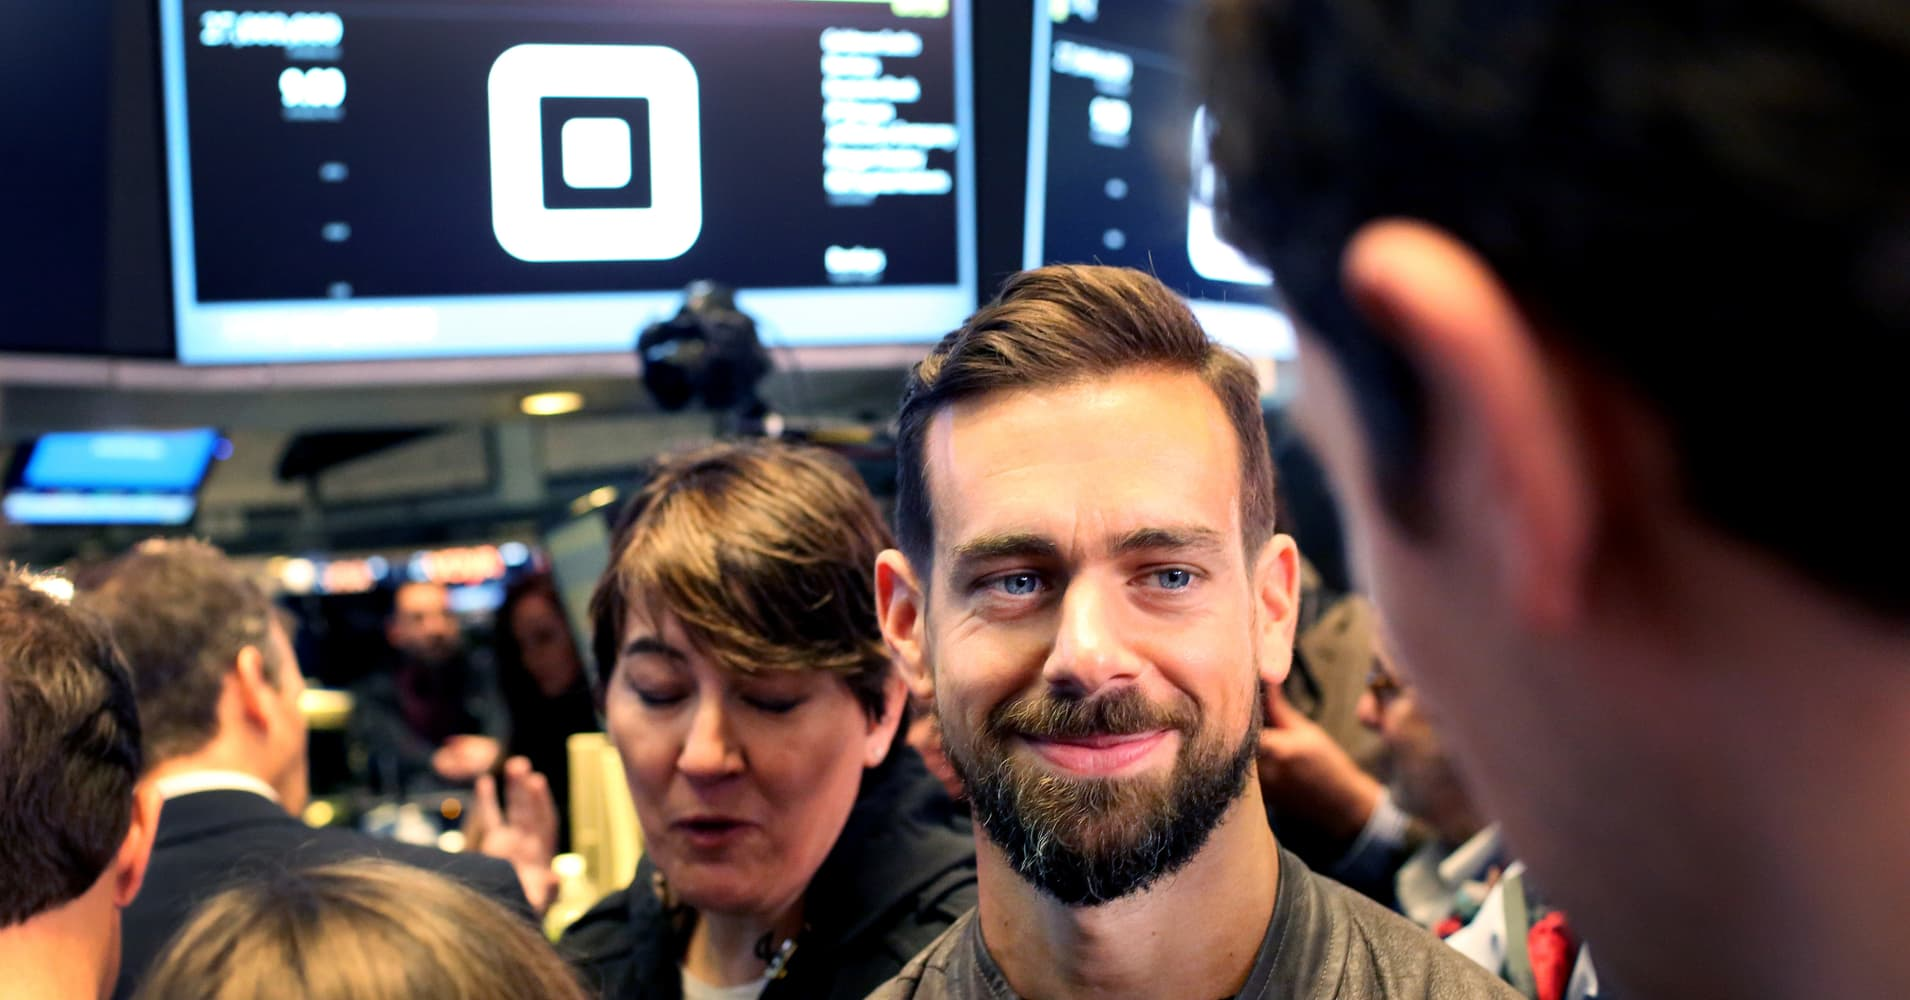 Square expands its bank-like offerings, letting sellers charge customers in installments